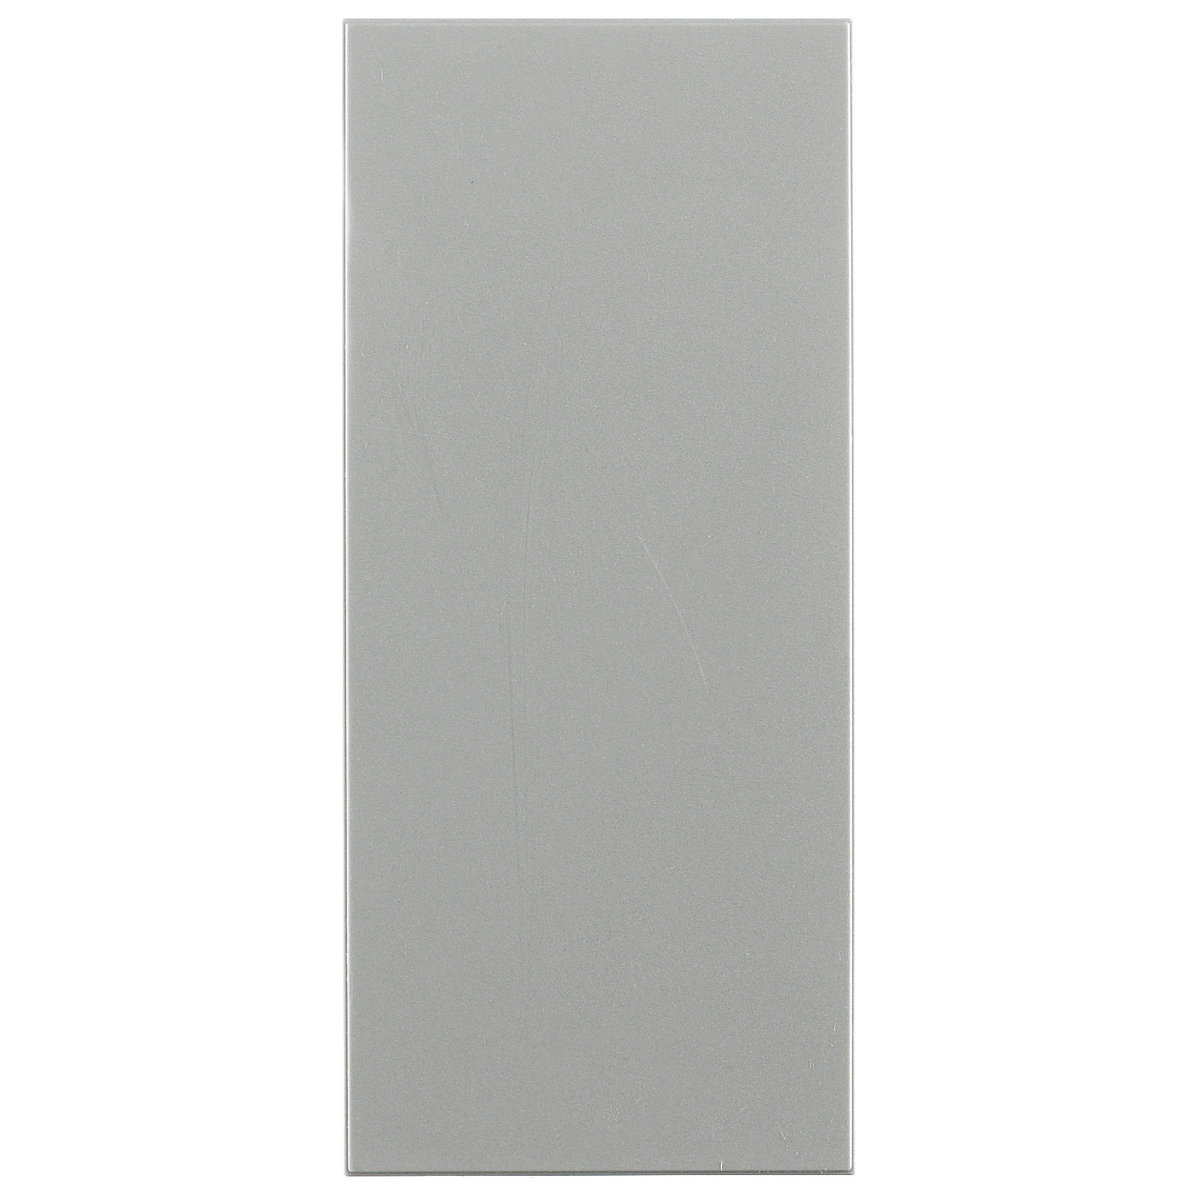 Hubbell HBLBL300GYFACEPLATE, SNAP-IN, BLANK, GY